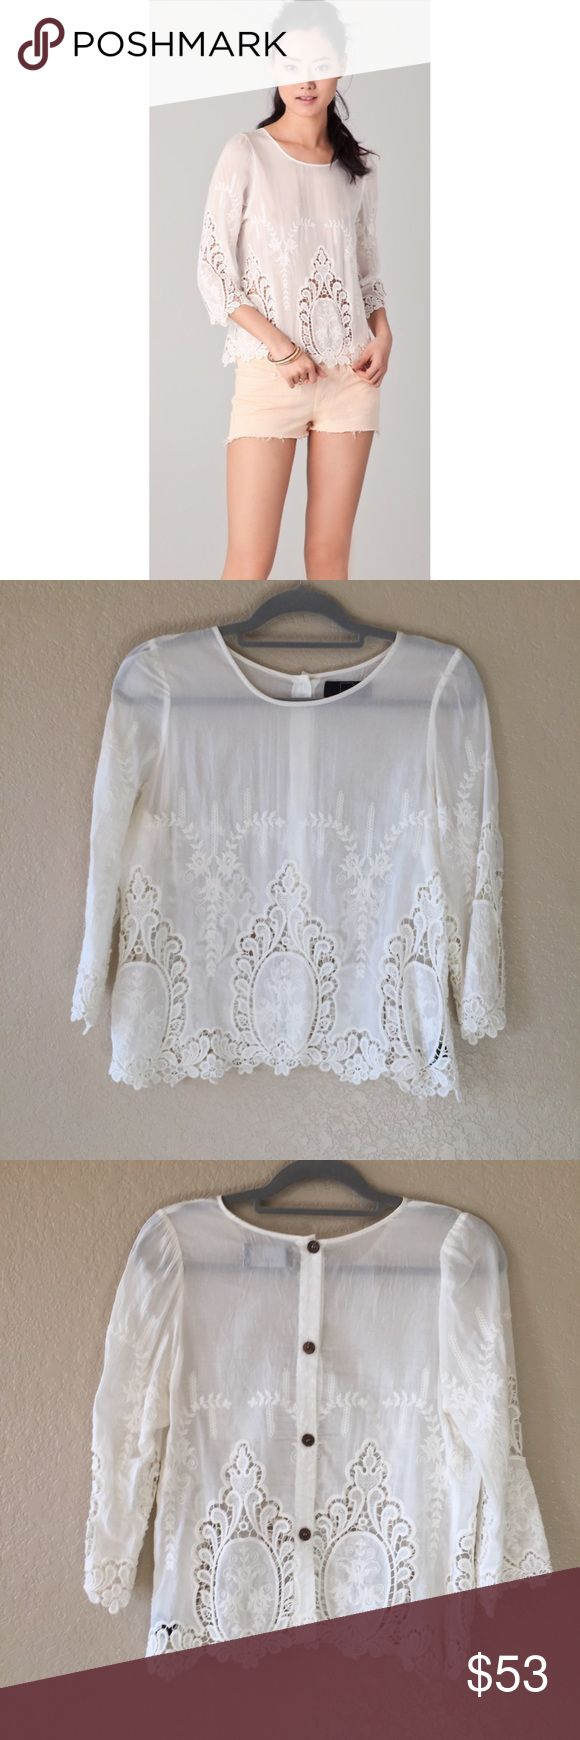 Dolce Vita Deidra Top Ivory embroidered lace detailing throughout has cute functional wooden back buttons. In good preowned condition. Dolce Vita Tops